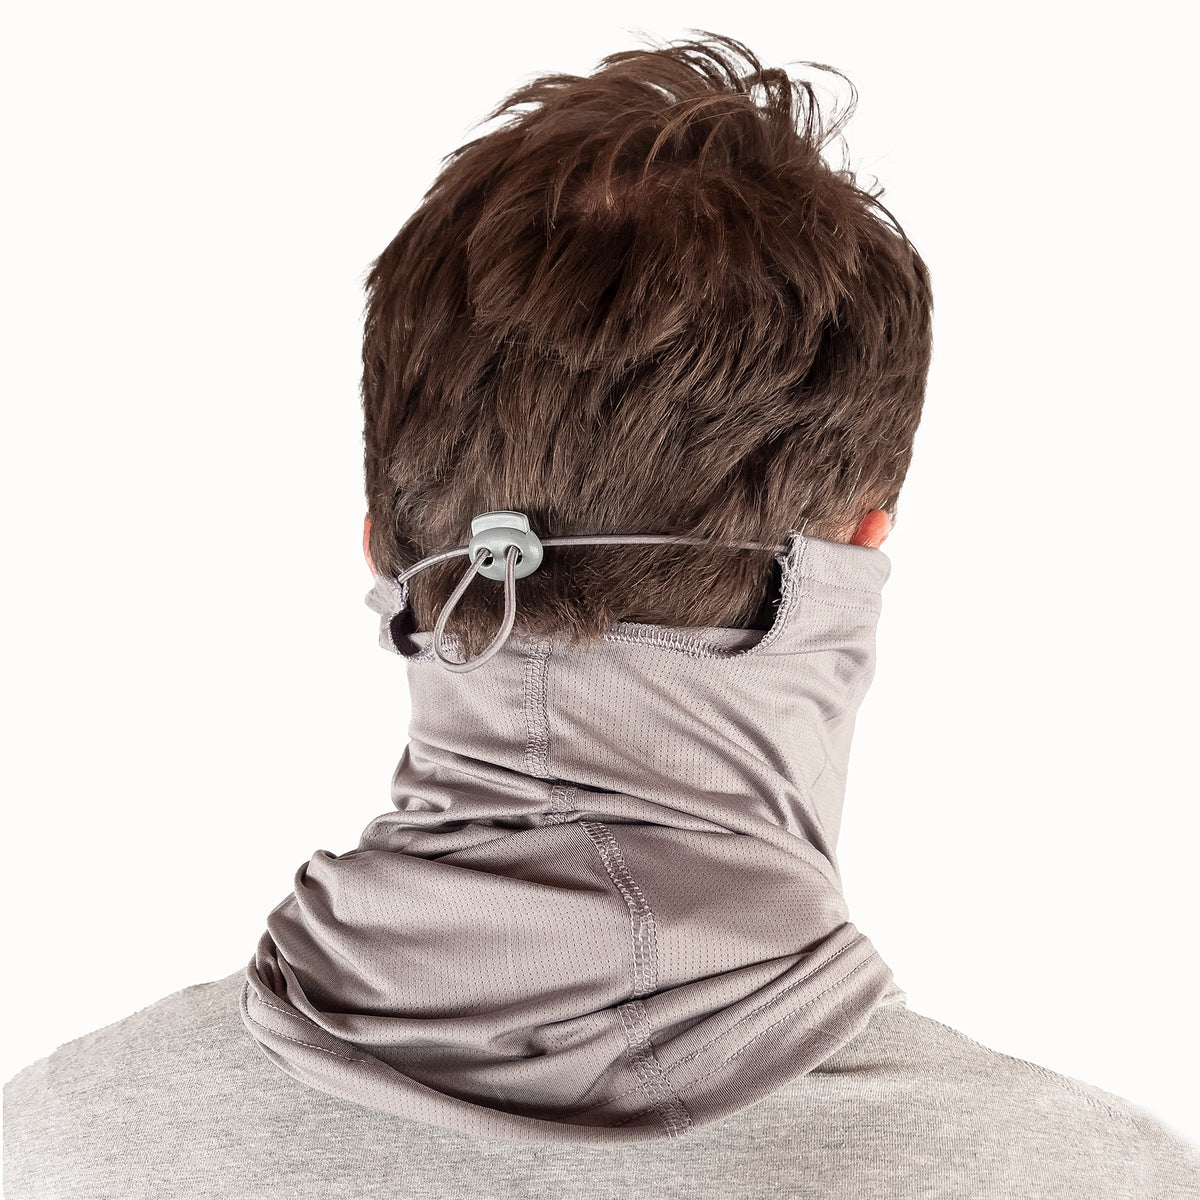 Puretec cool® Antimicrobial Neck Gaiter with Nanofiber Filter in Gray Flannel Legend Stripe